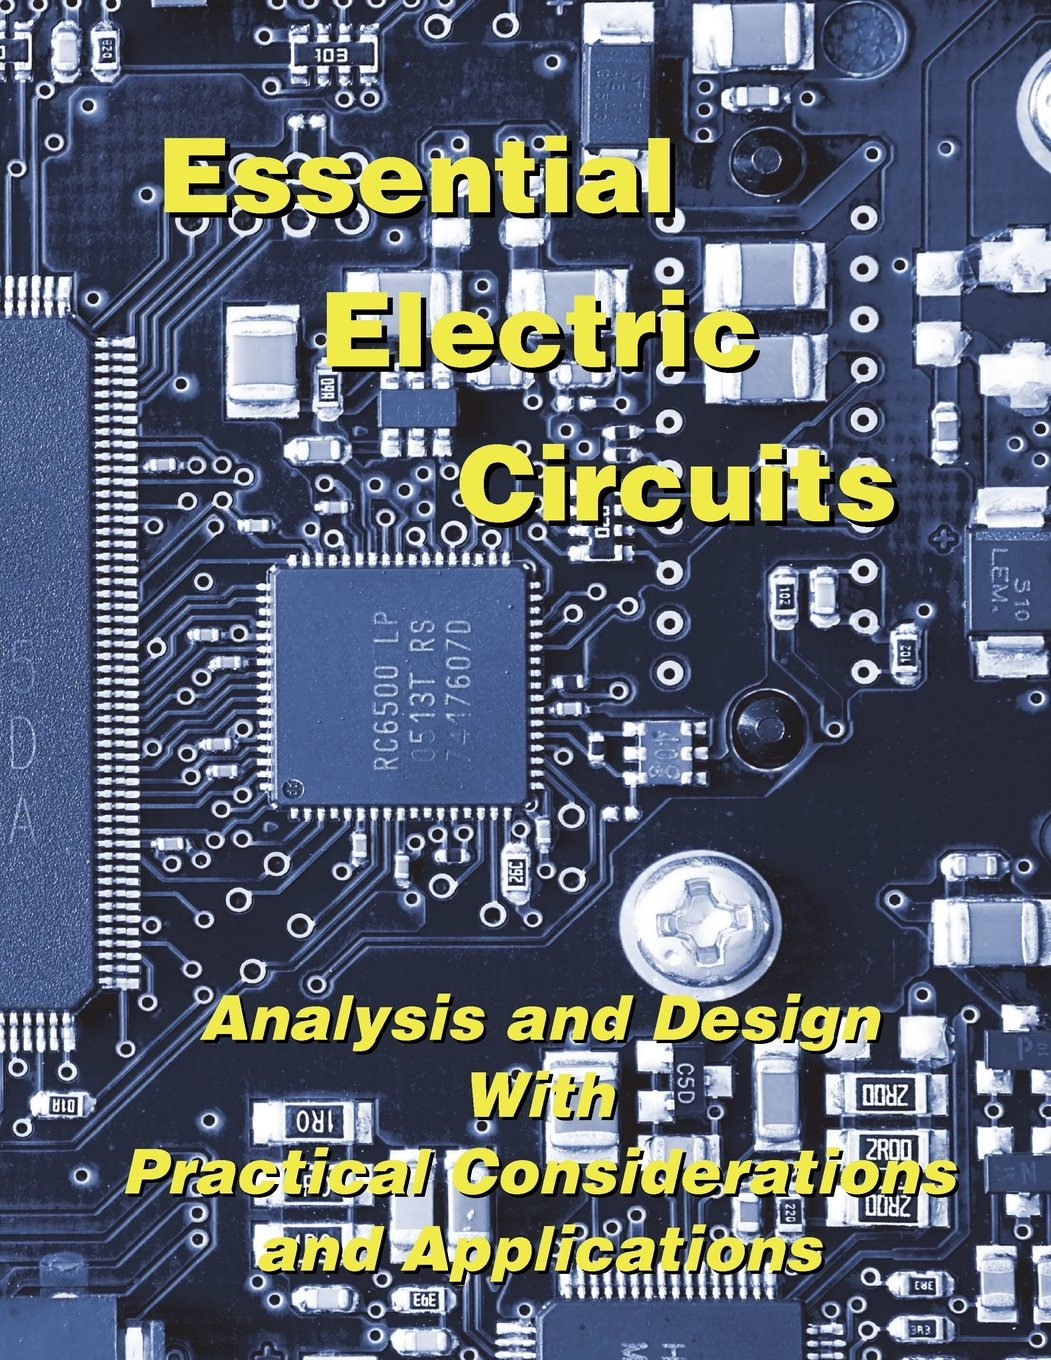 Essential Electric Circuits Analysis And Design With Practical Electronic Considerations Applications Duane Hanselman 9780982692653 Books